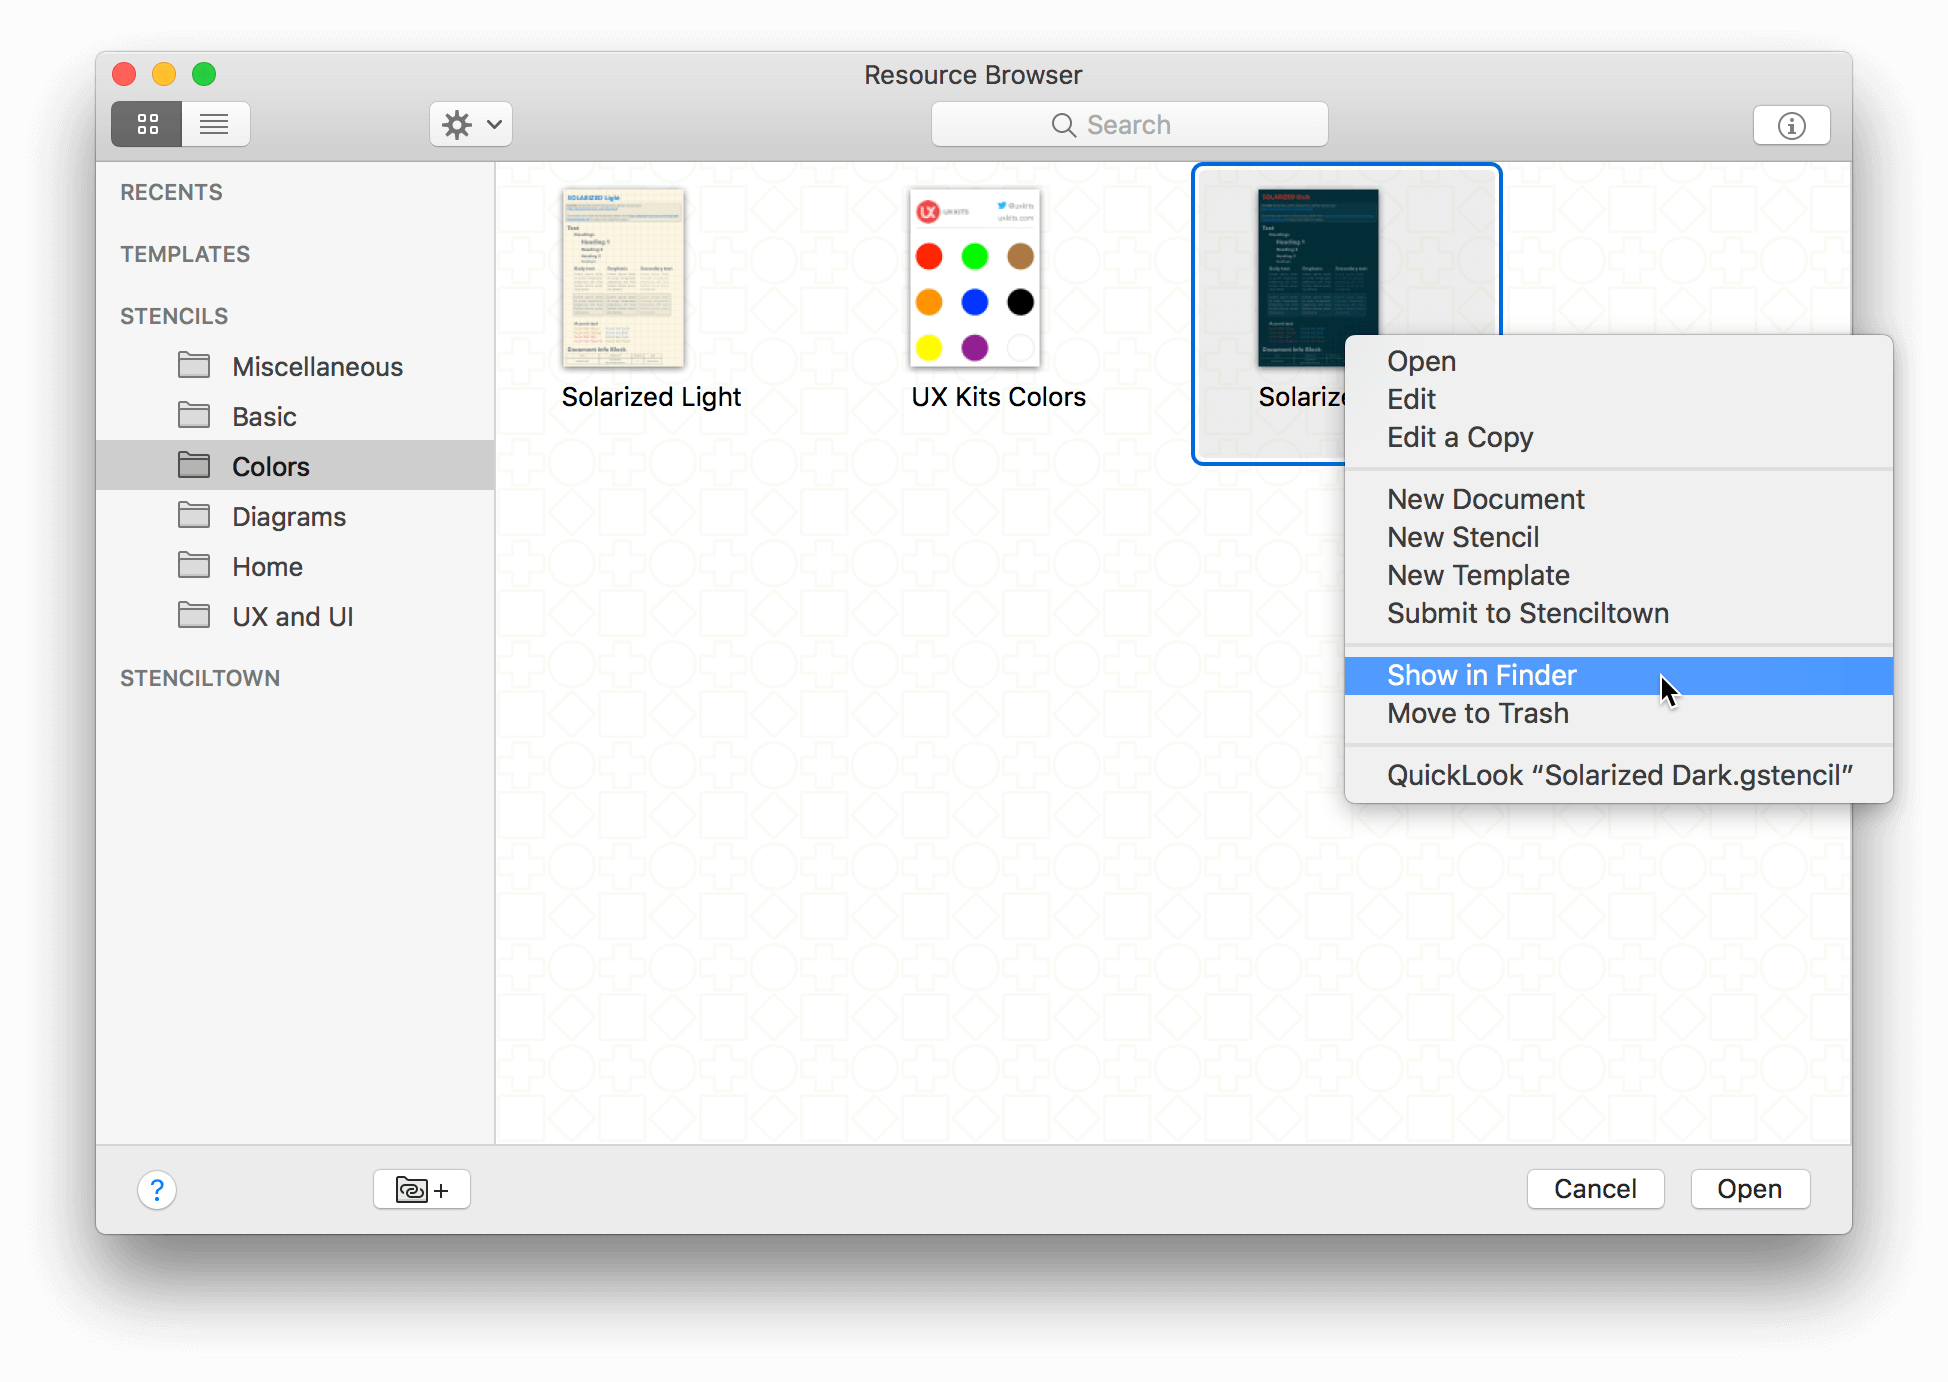 The Resource Browser is shown with a stencil selected and the Action menu open; the Show in Finder option is highlighted in the Action menu.